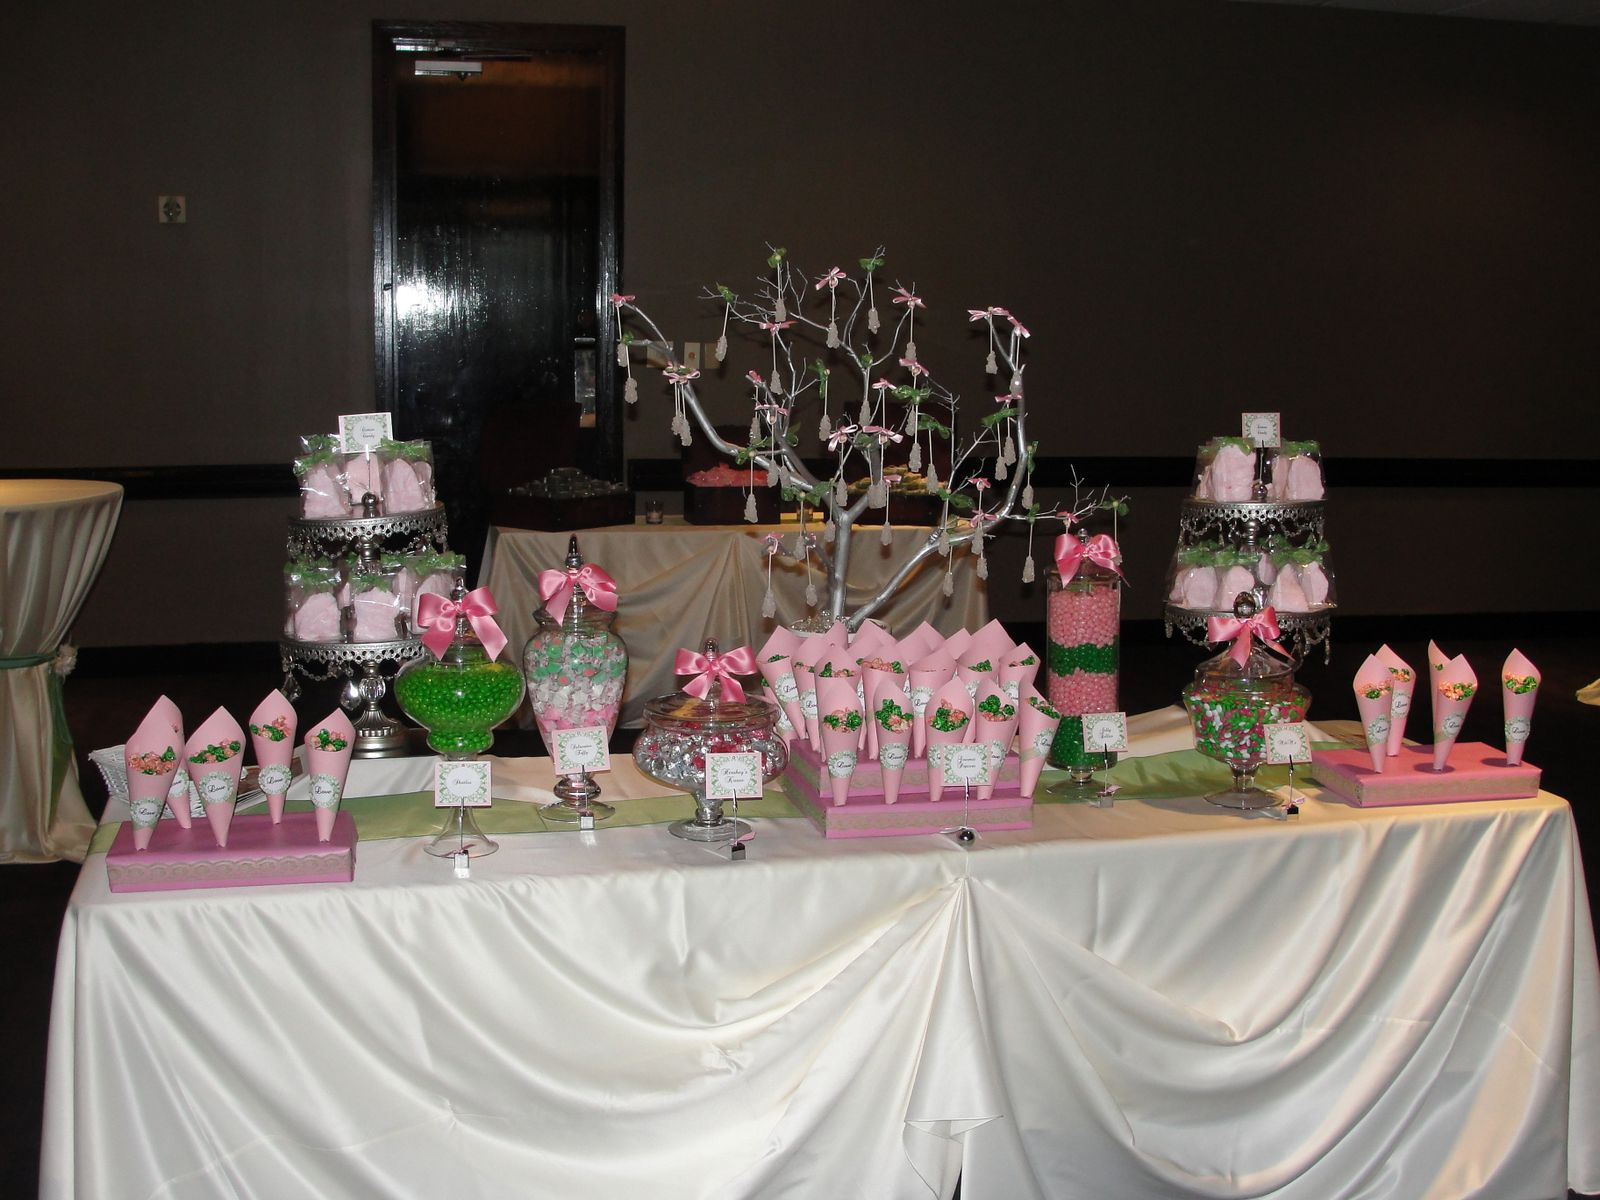 The Amazing Candy Buffets and Fun Food Designers of Sugar Bunch ...